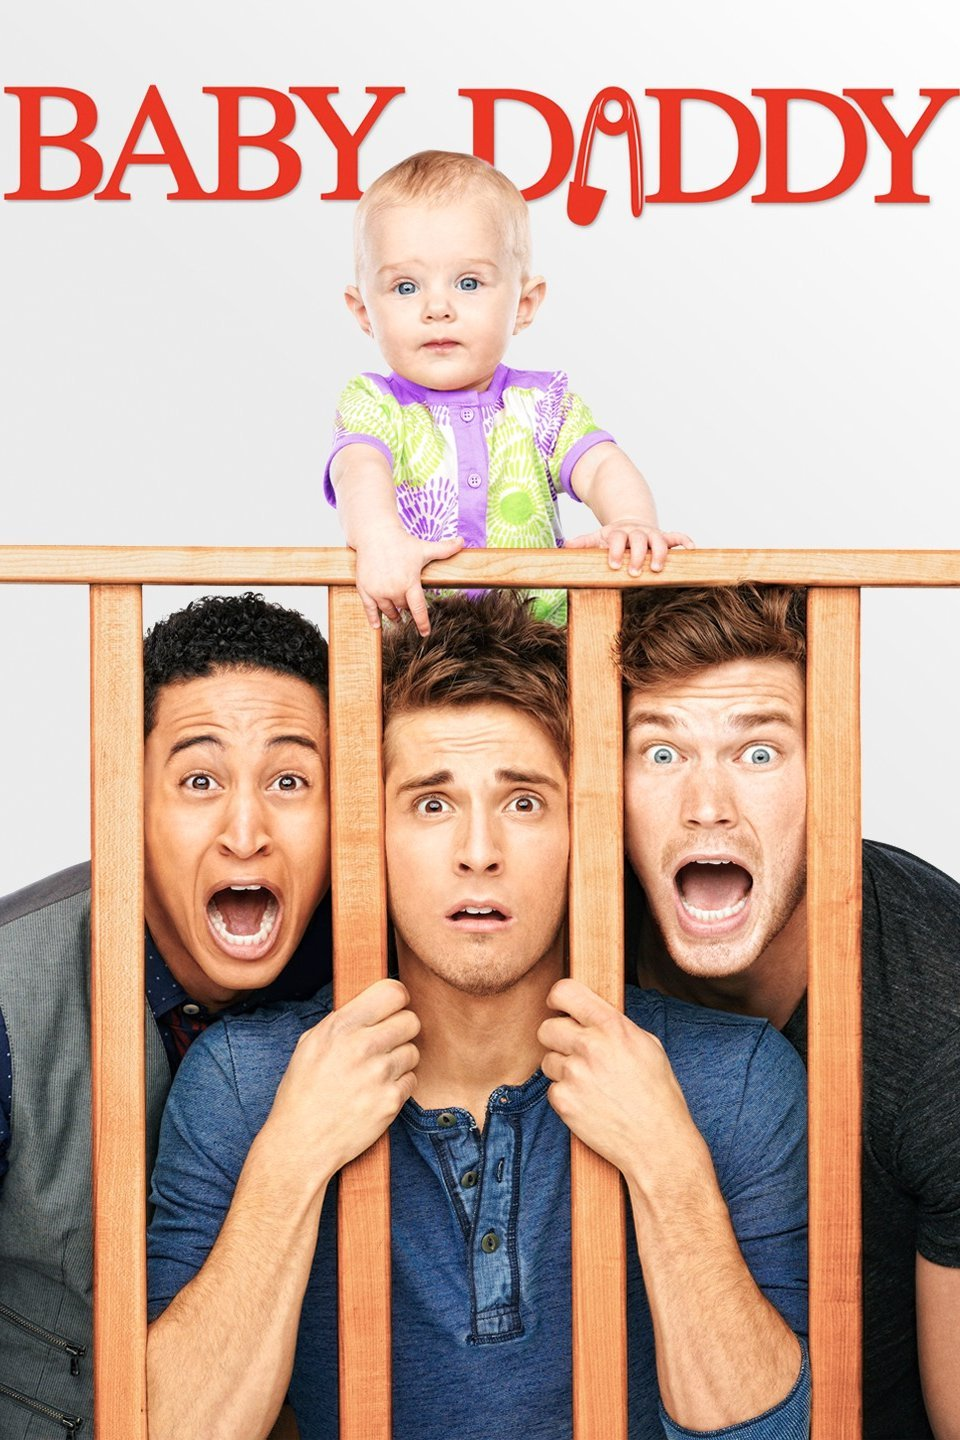 Baby Daddy Season 6 Episode 2 Download HDTV Micromkv